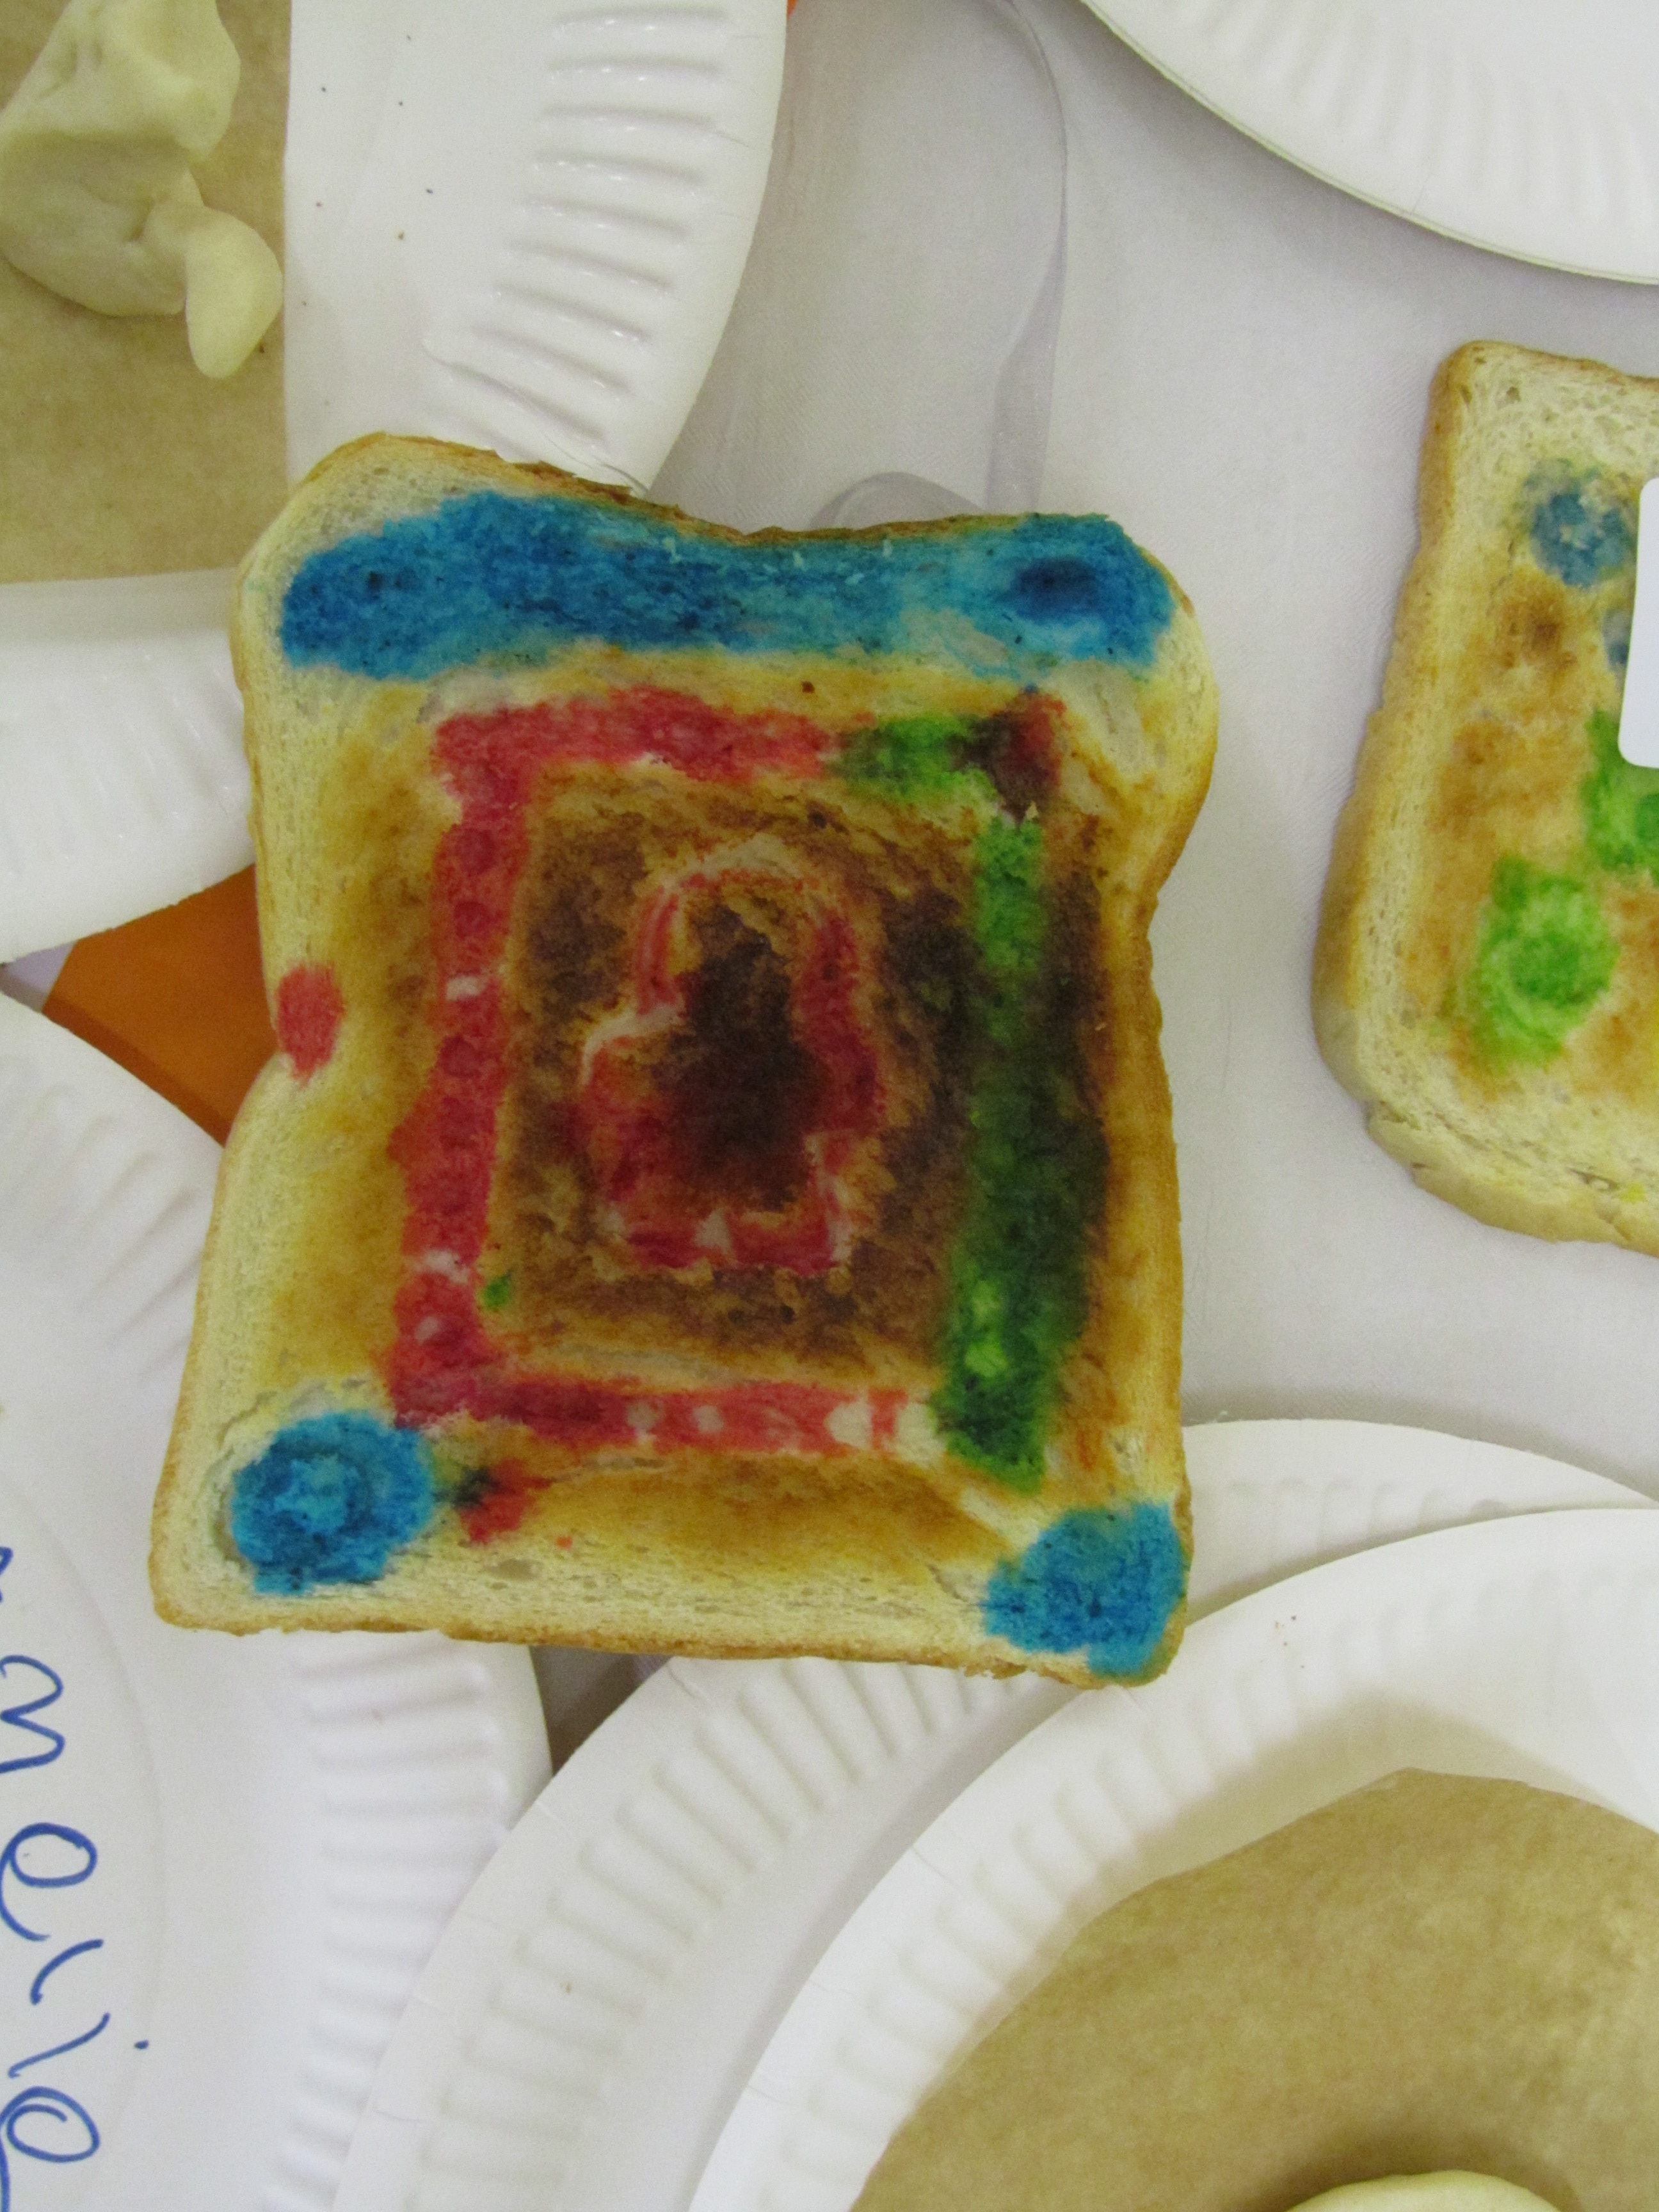 Imprinted and coloured toast